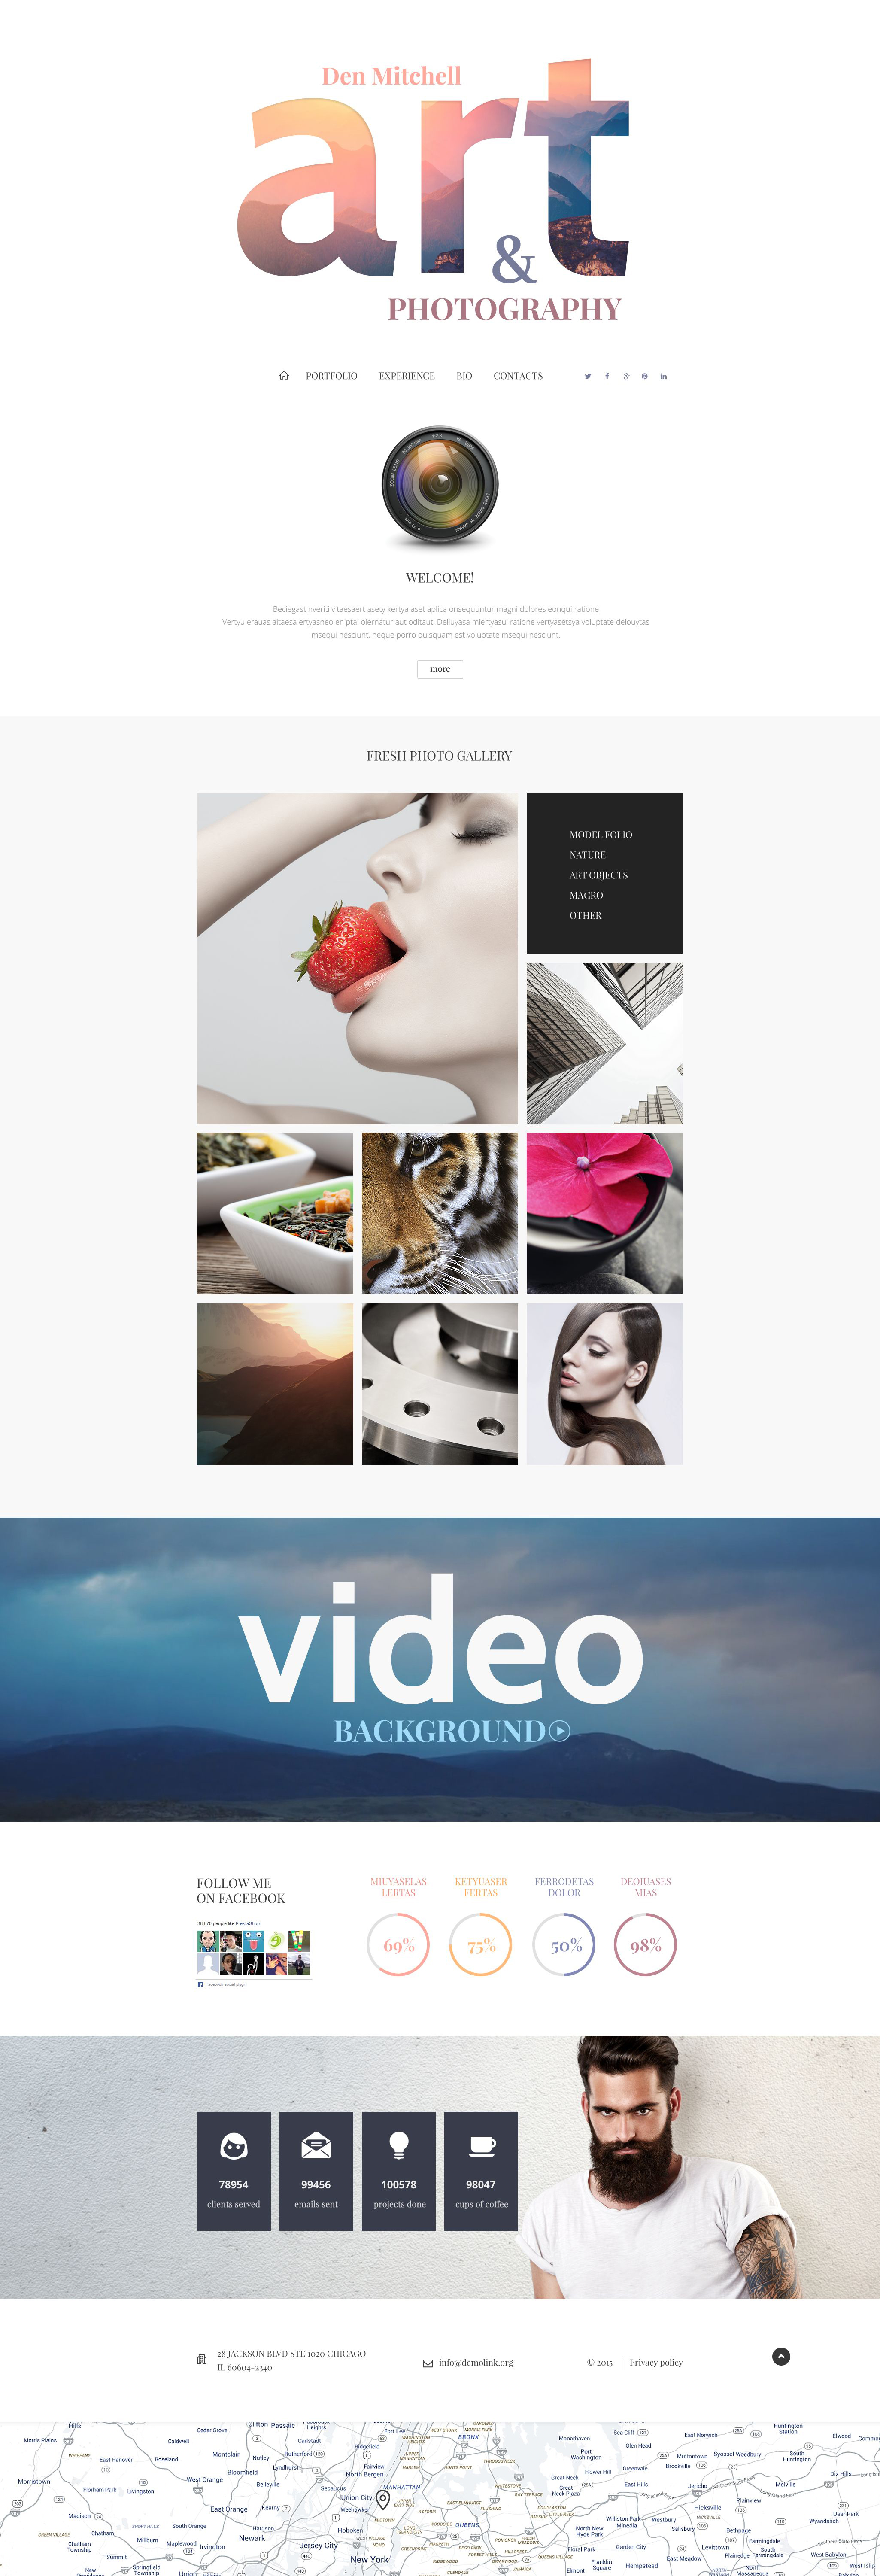 Professional Photographer Joomla Template